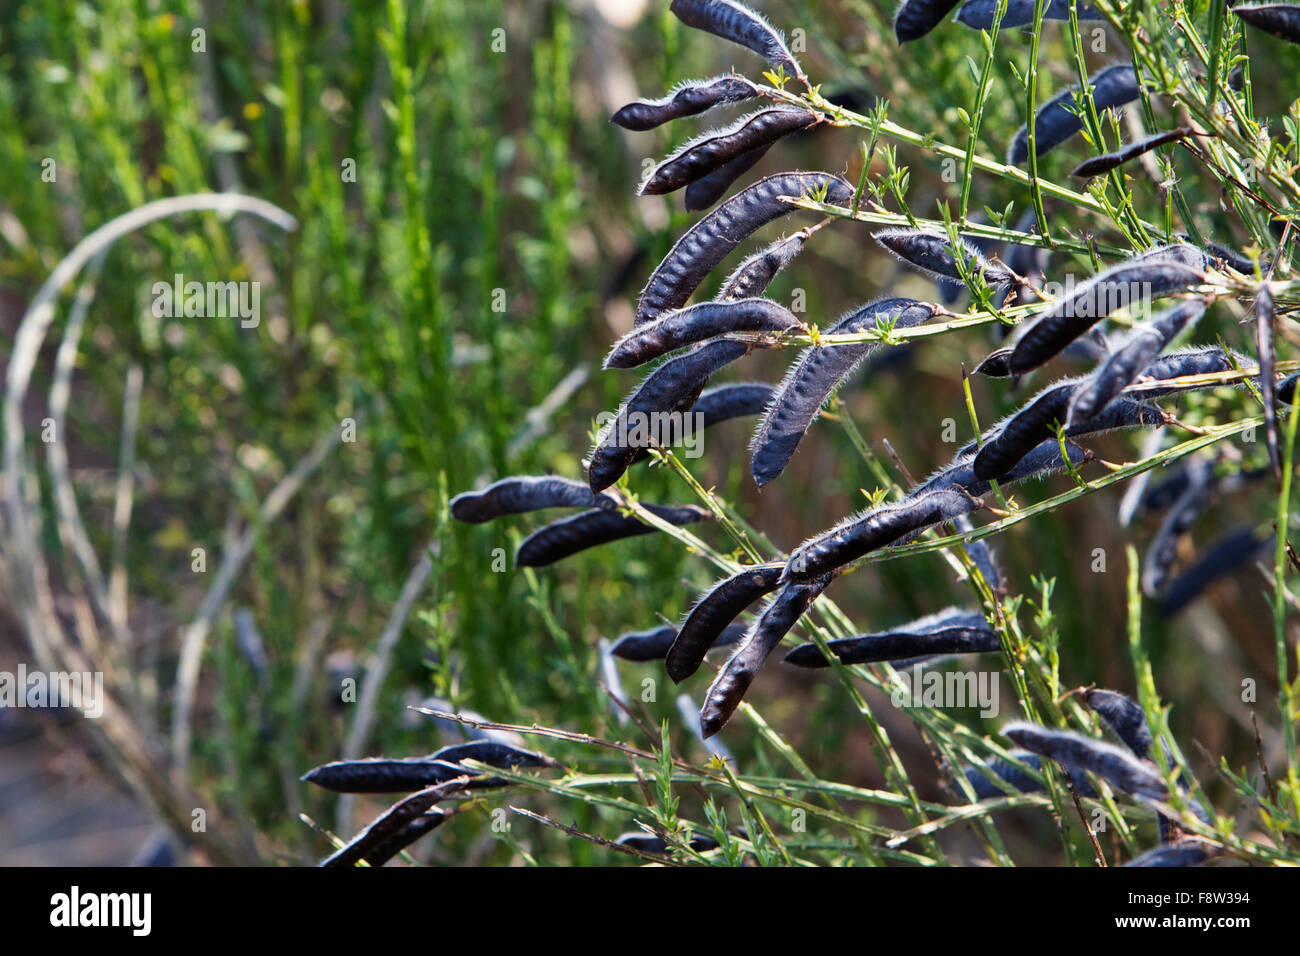 Fuzzy Bean Stock Photos Images Alamy Spring Wiring Lupine Black Seed Pods Image